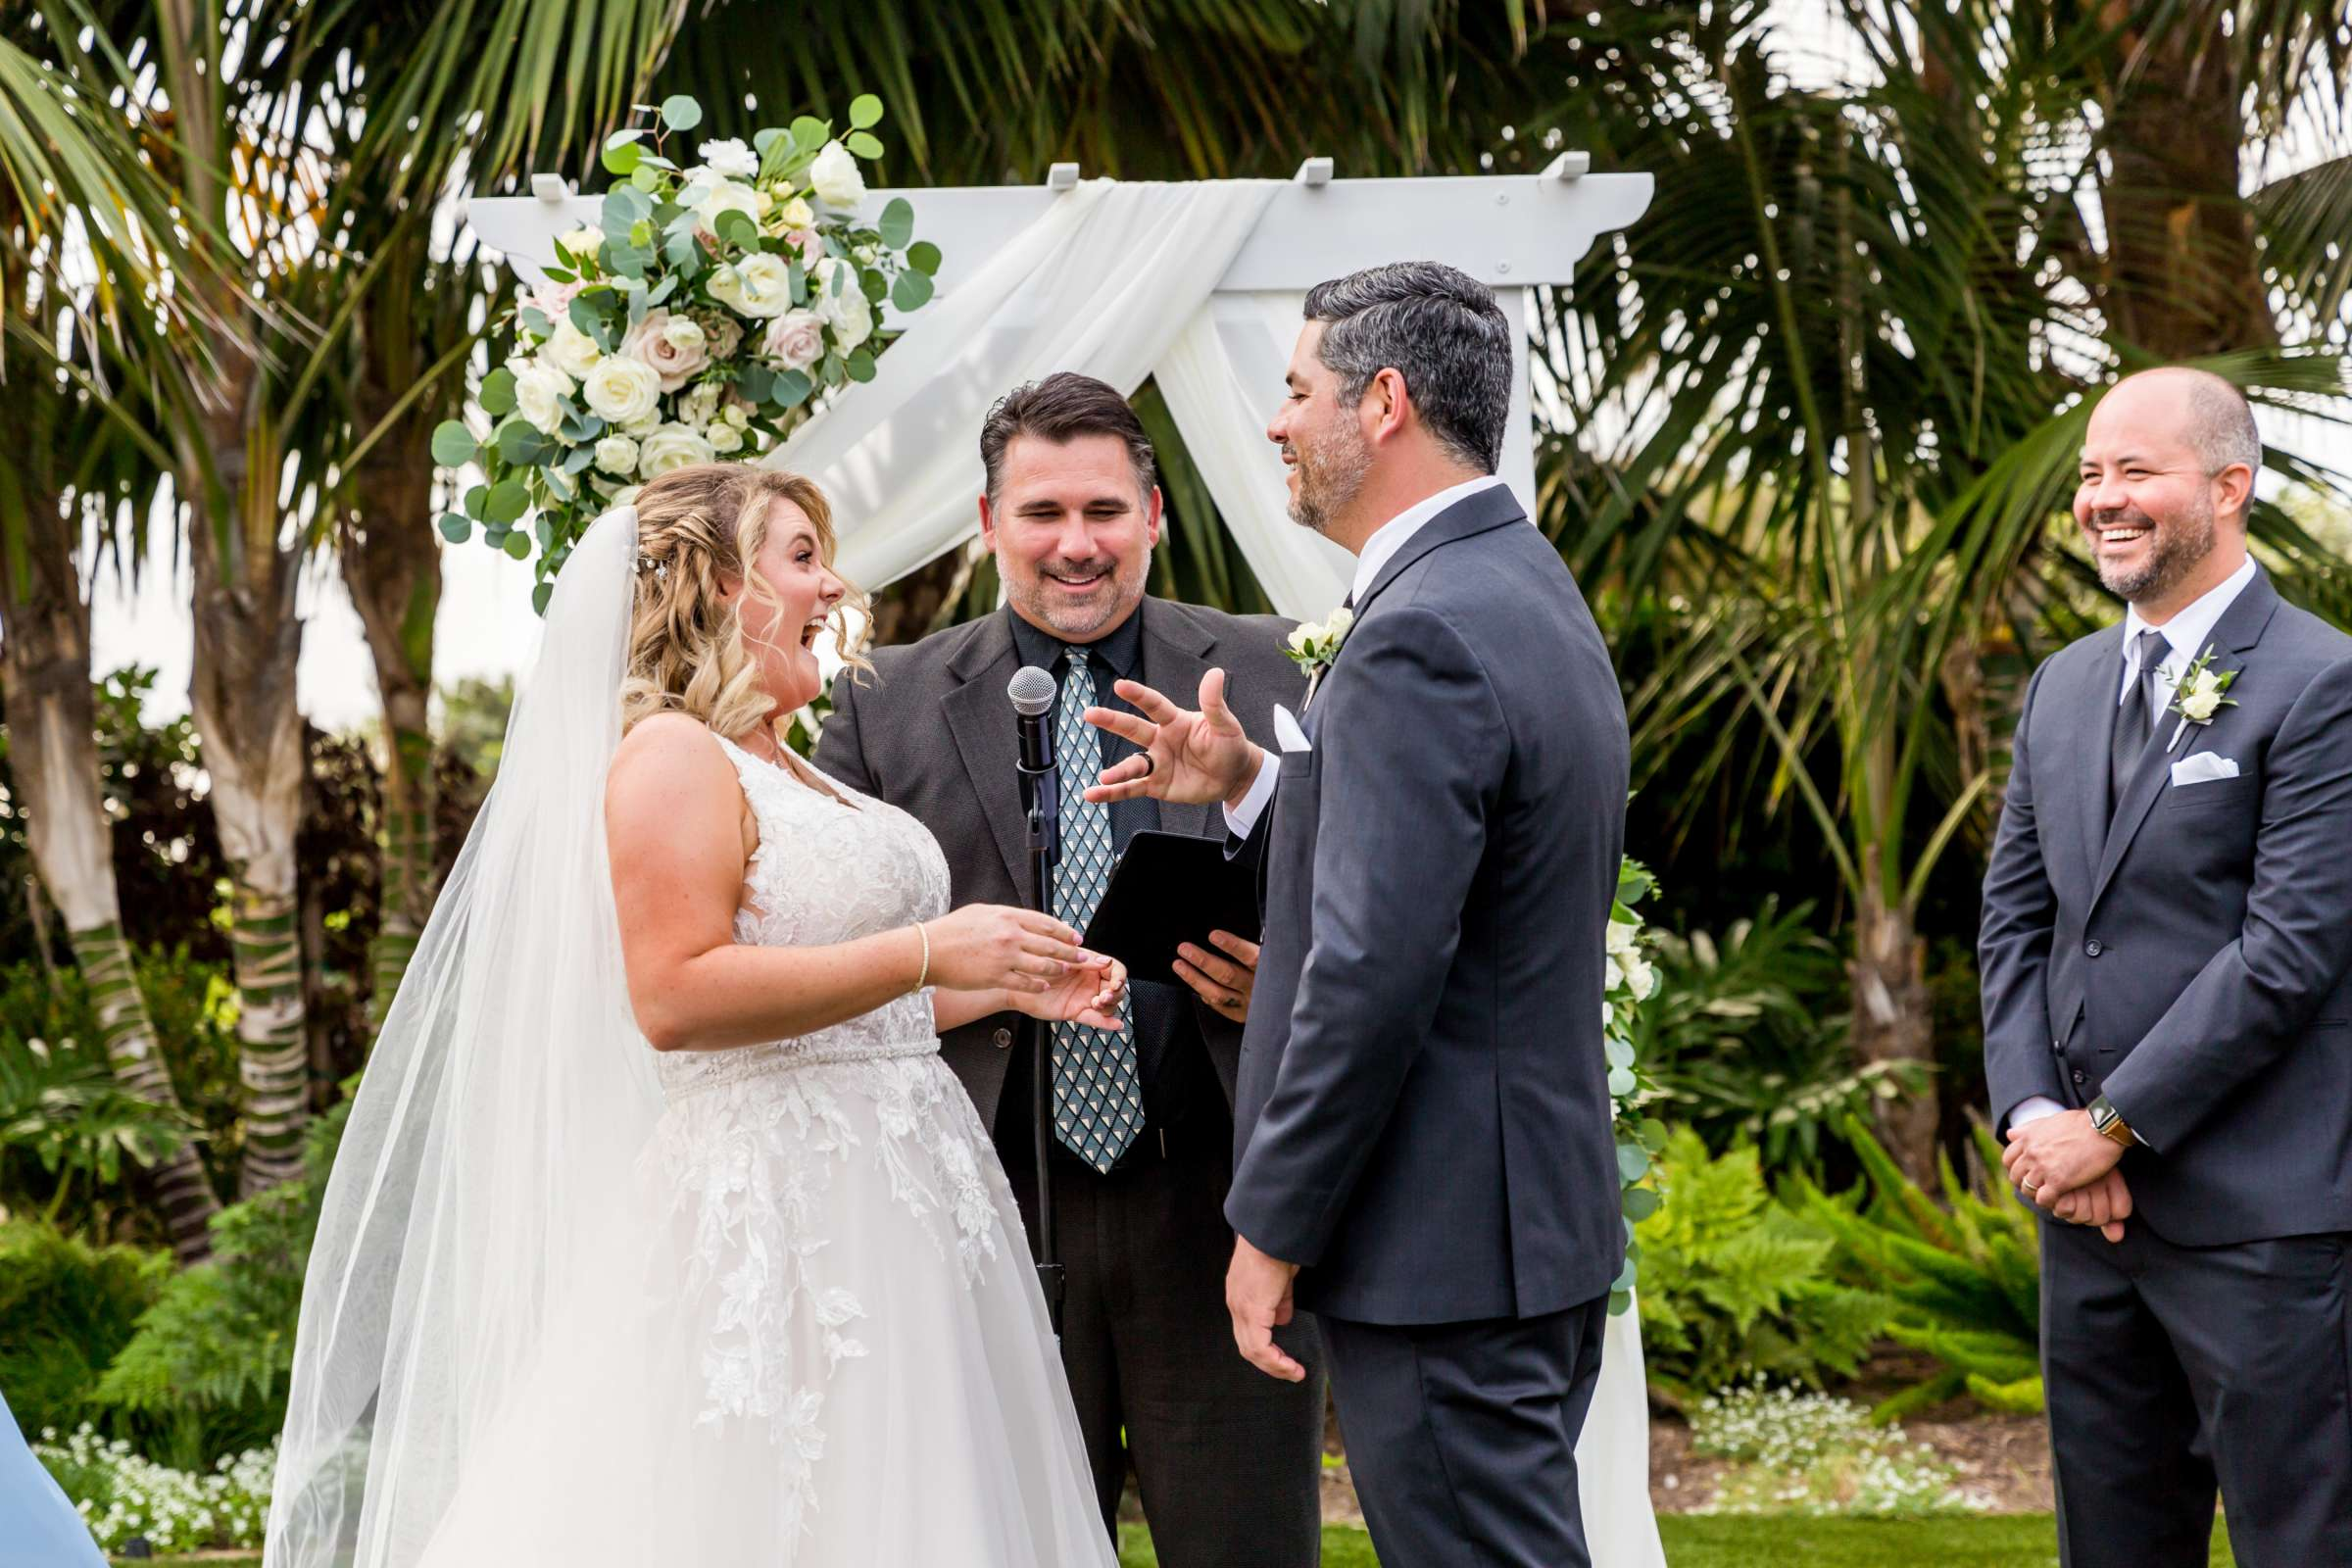 Cape Rey Carlsbad, A Hilton Resort Wedding, Michelle and Justin Wedding Photo #66 by True Photography